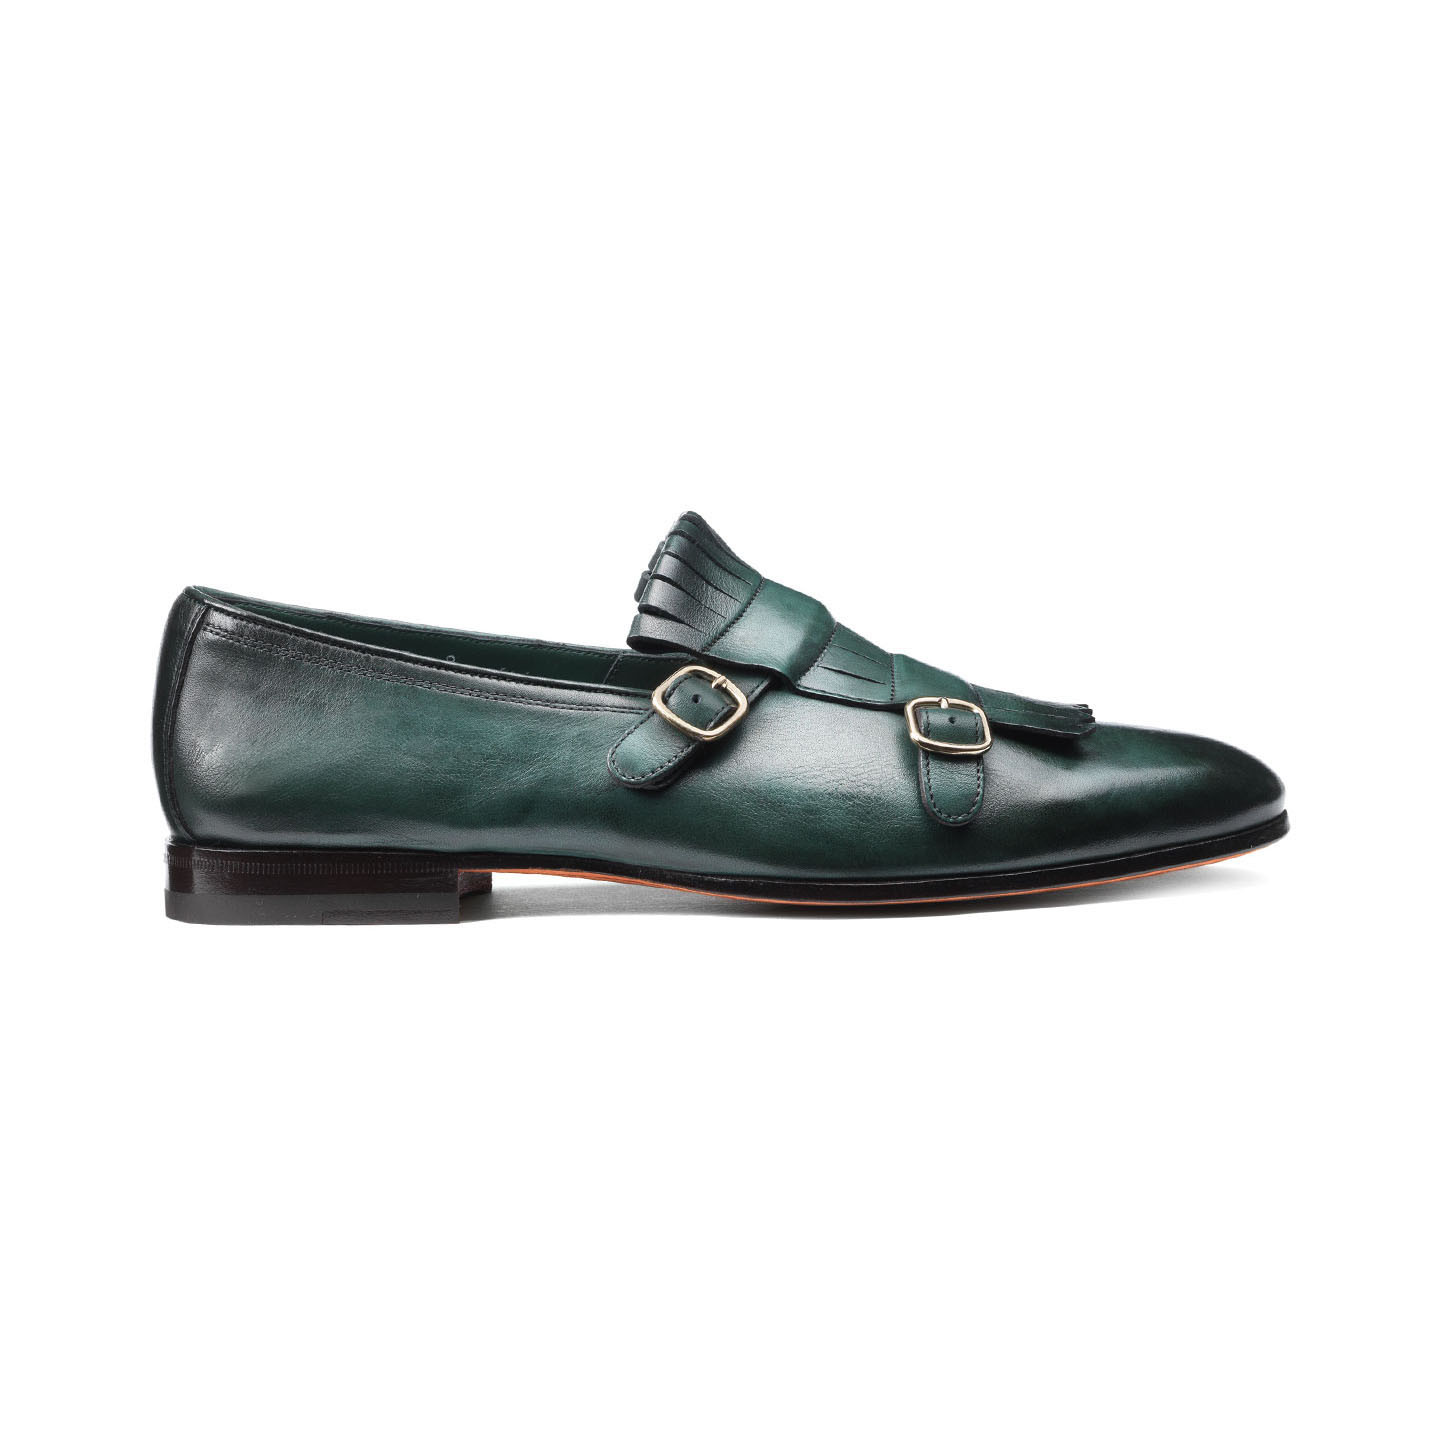 Santoni's double-buckle leather shoe in forest-green